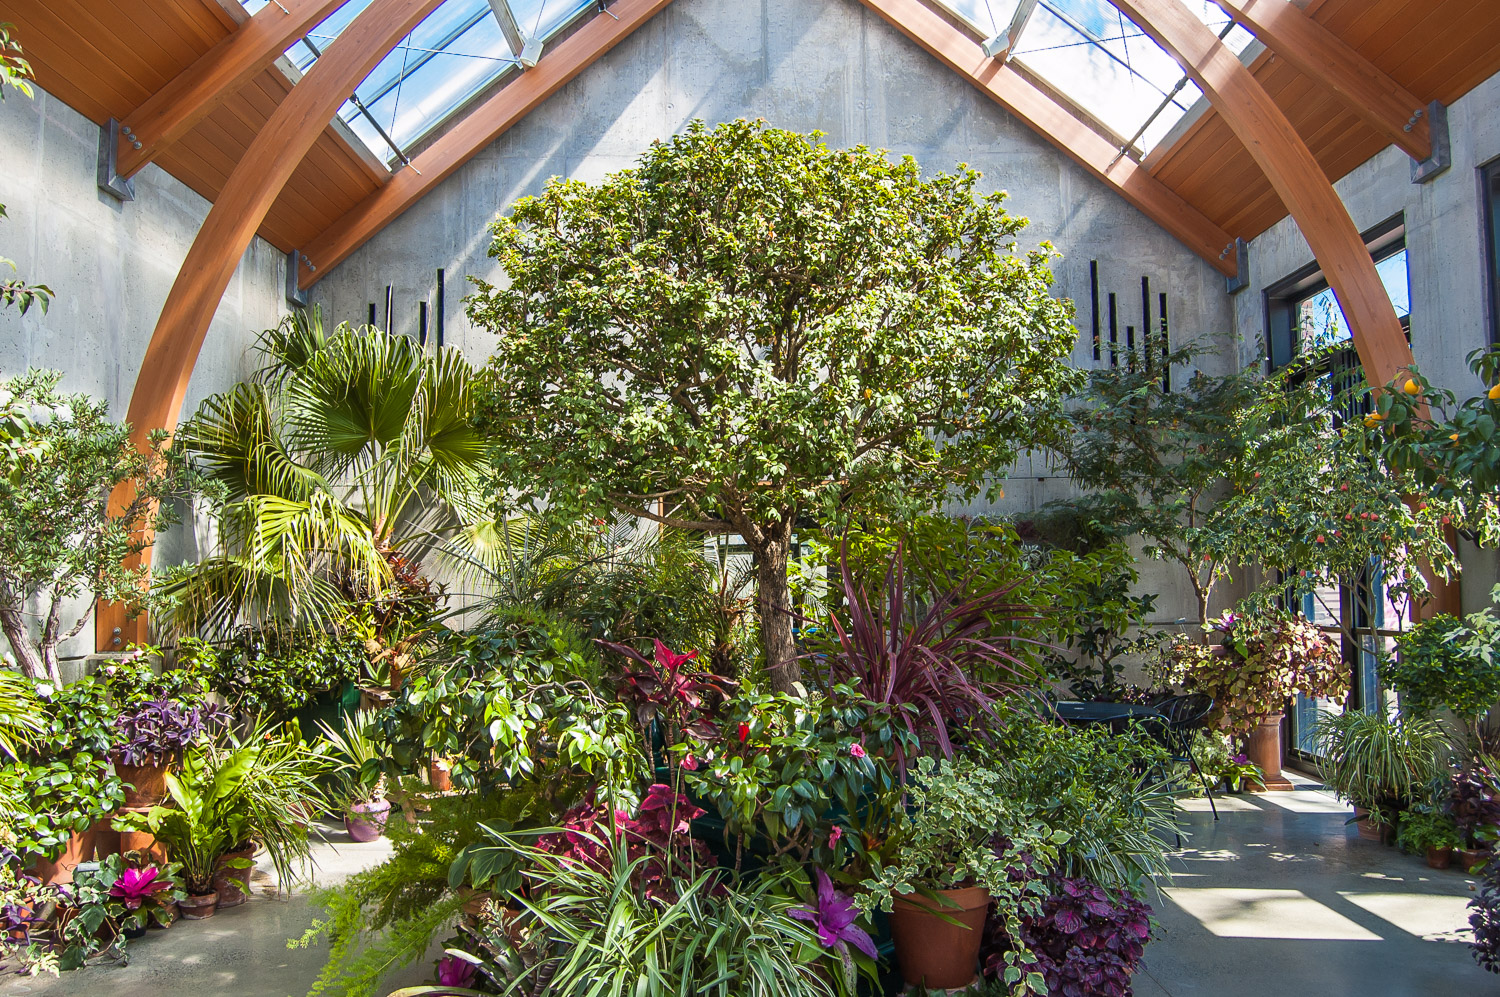 The Limonaia, Tower Hill Botanic Garden